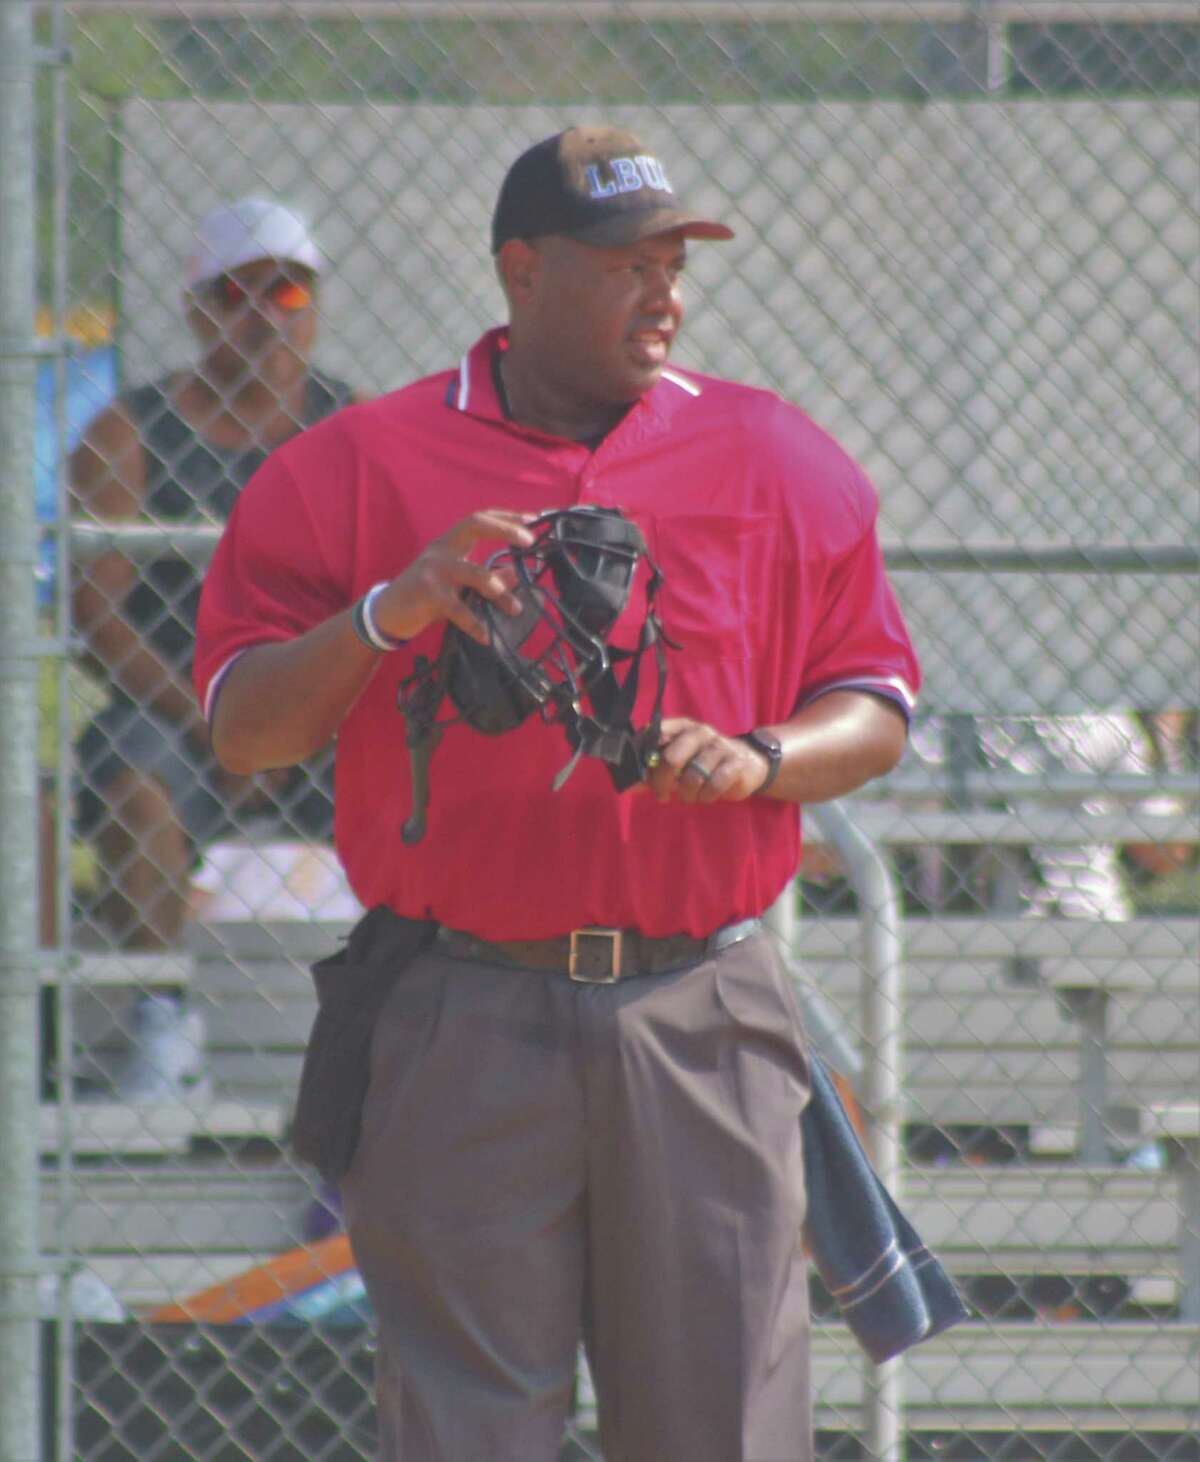 Umpire Donald Harper says he is ecstatic to be working his first World Series later this week when Pony Baseball holds its Mustang competition.